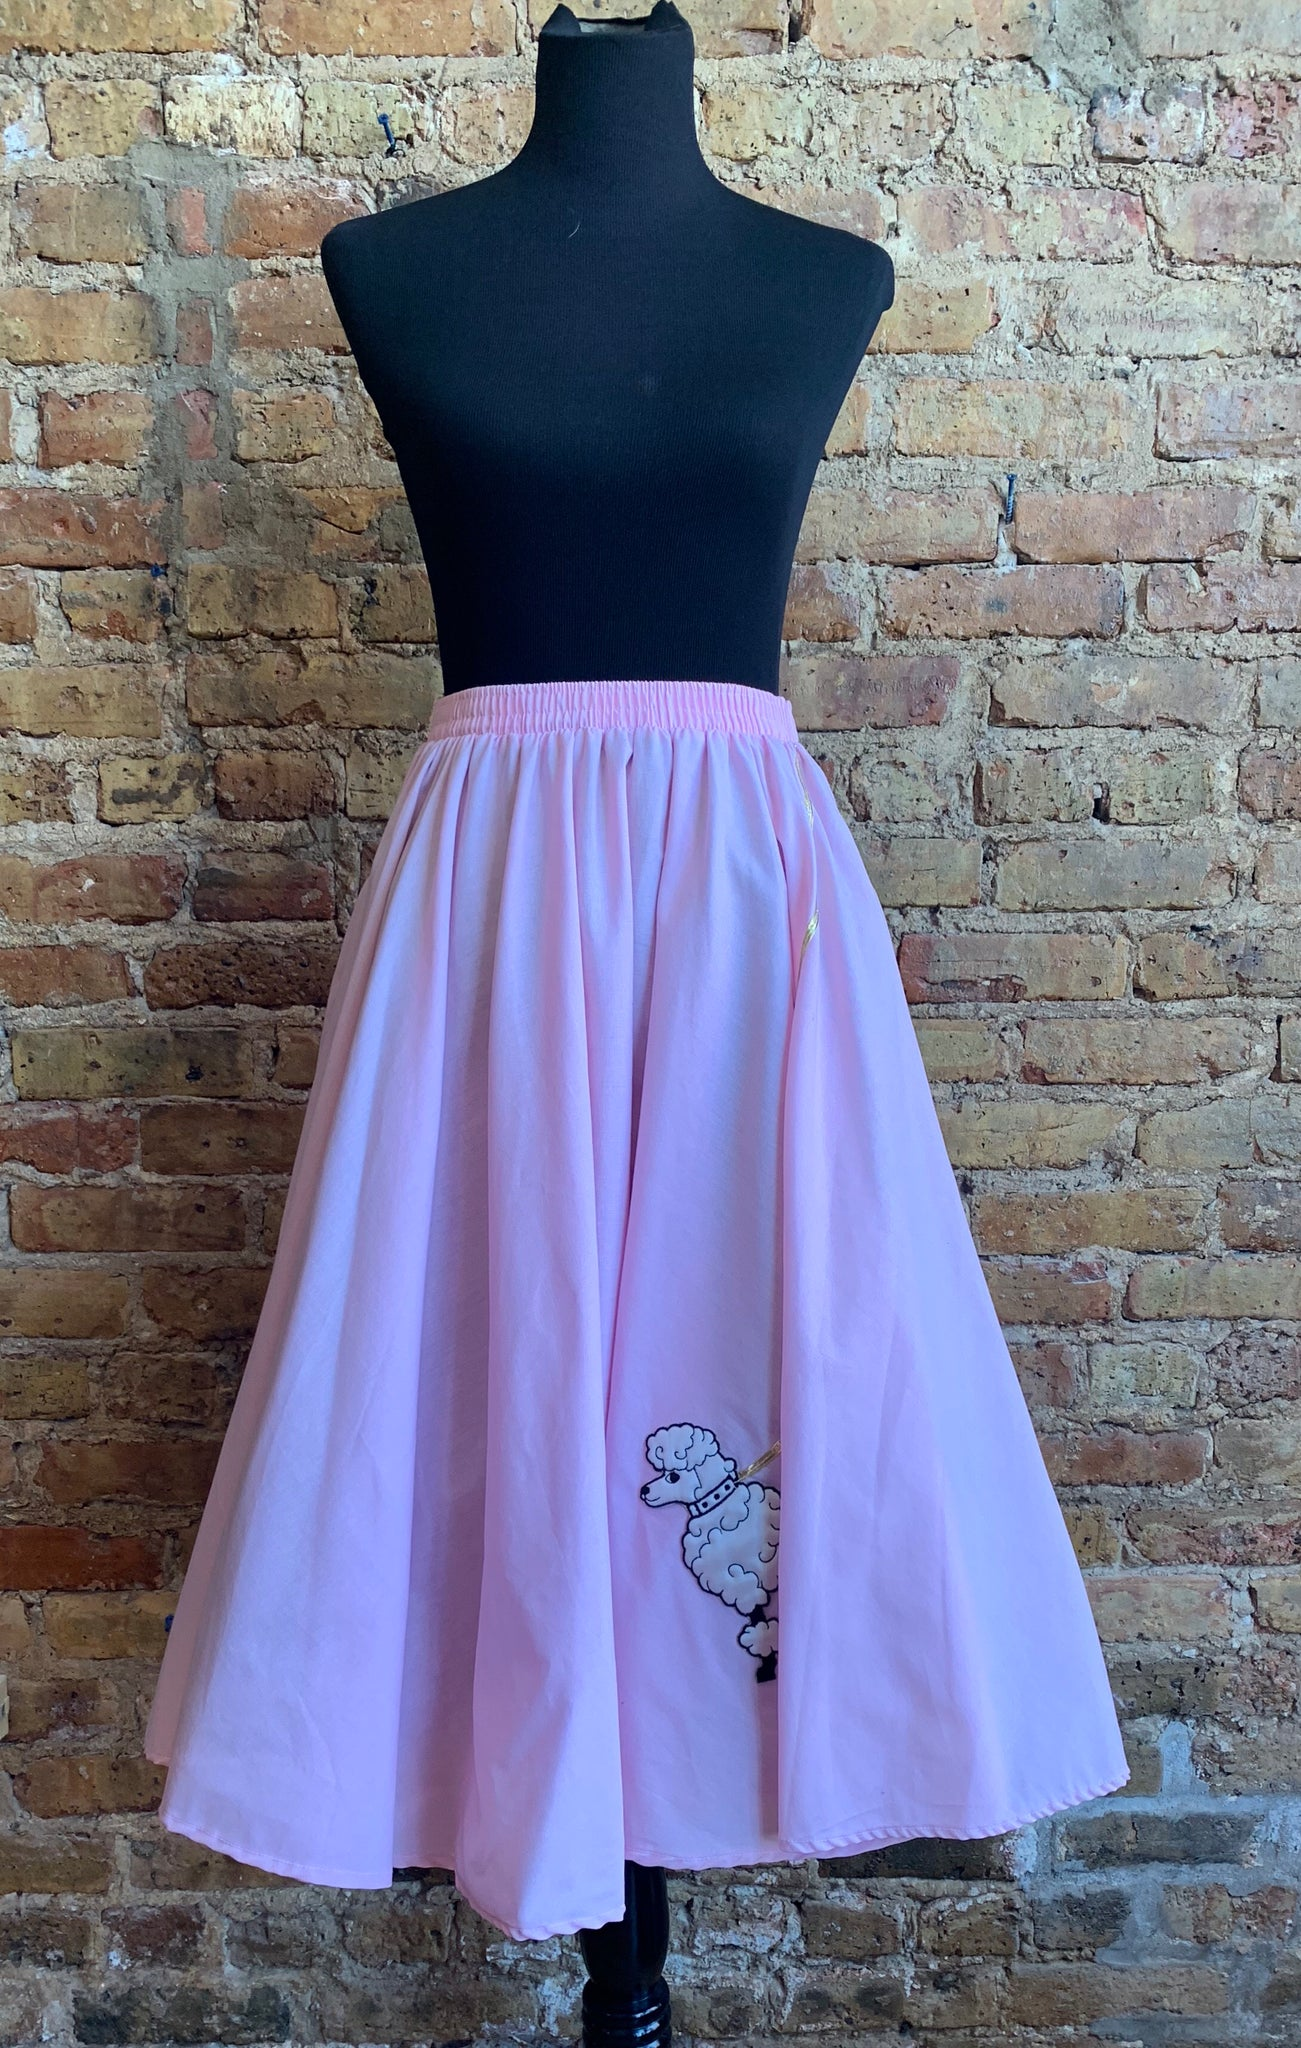 Poodle Skirt - S/M